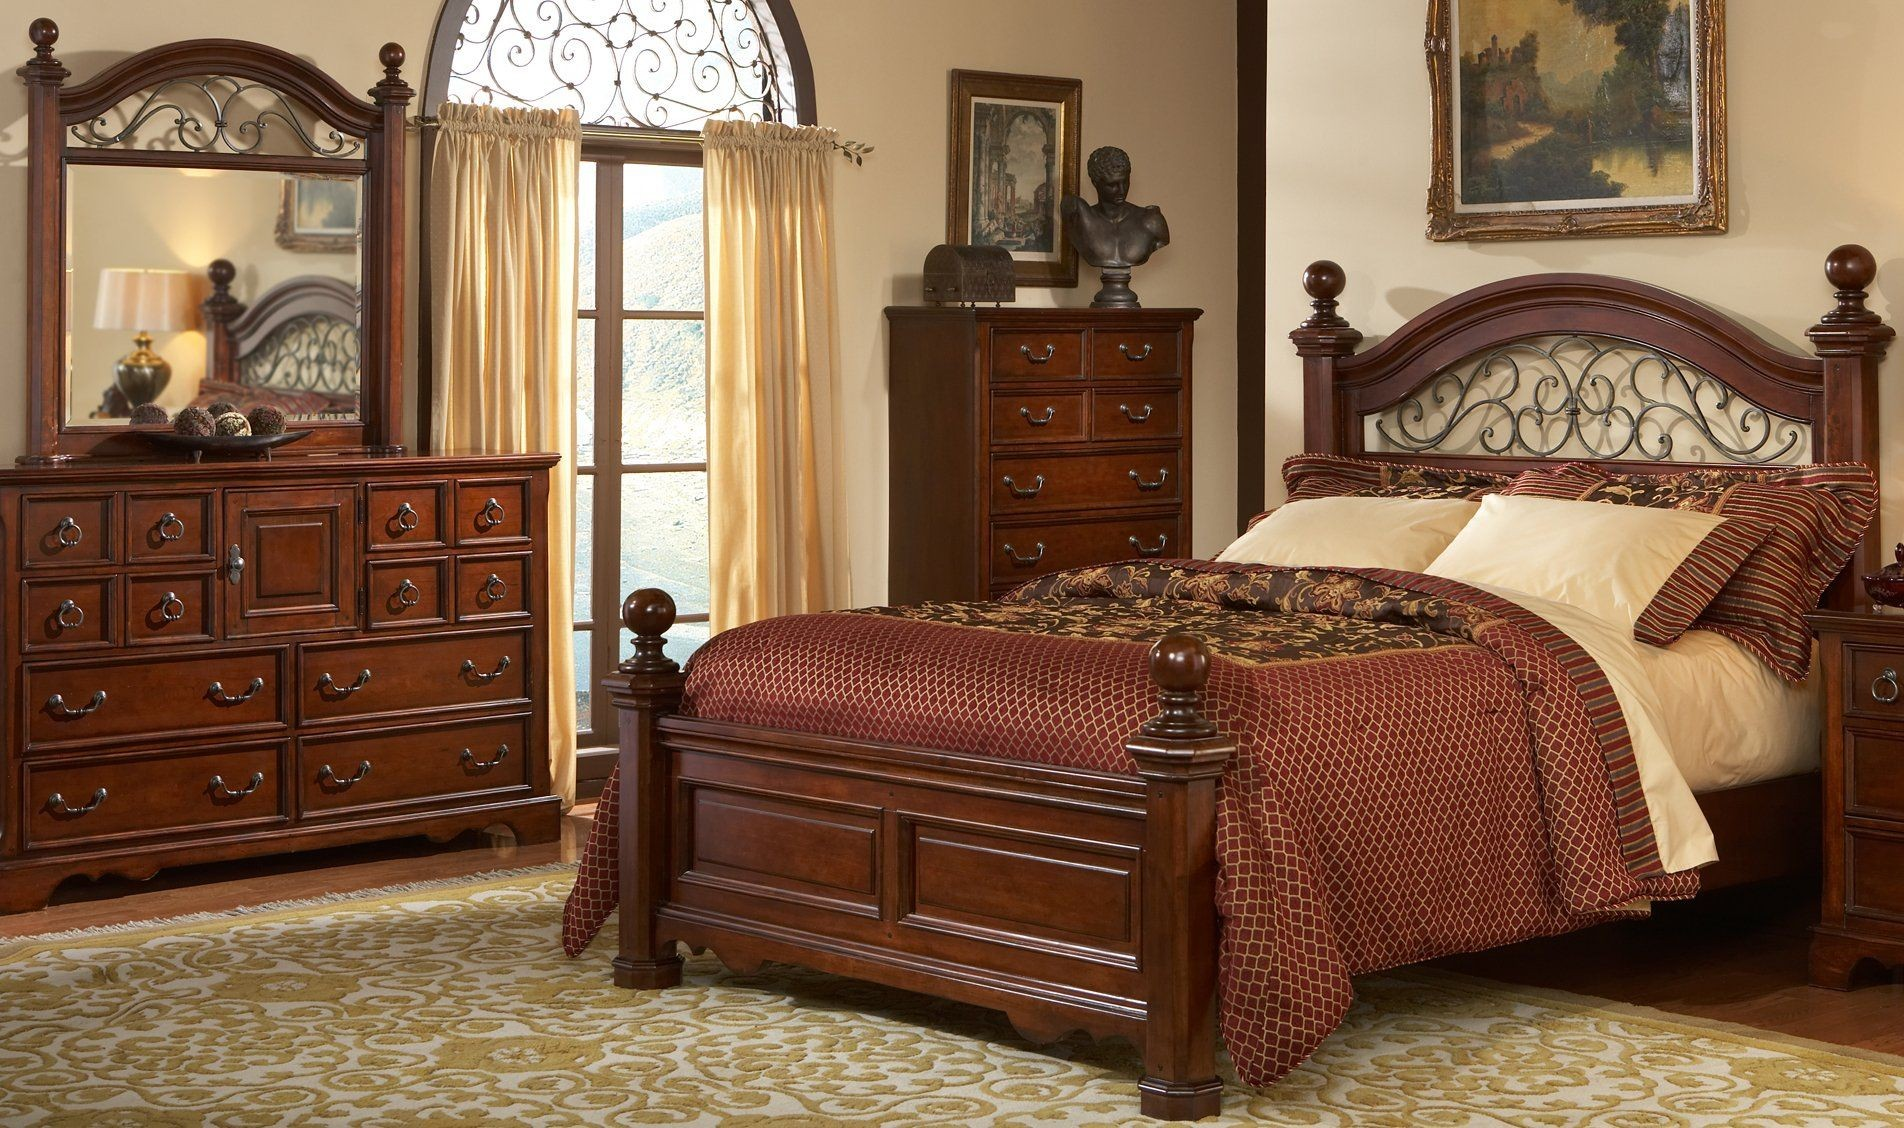 Gentil Iron And Wood Bedroom Furniture. Wood And Wrought Iron Headboards Bedroom  Furniture D